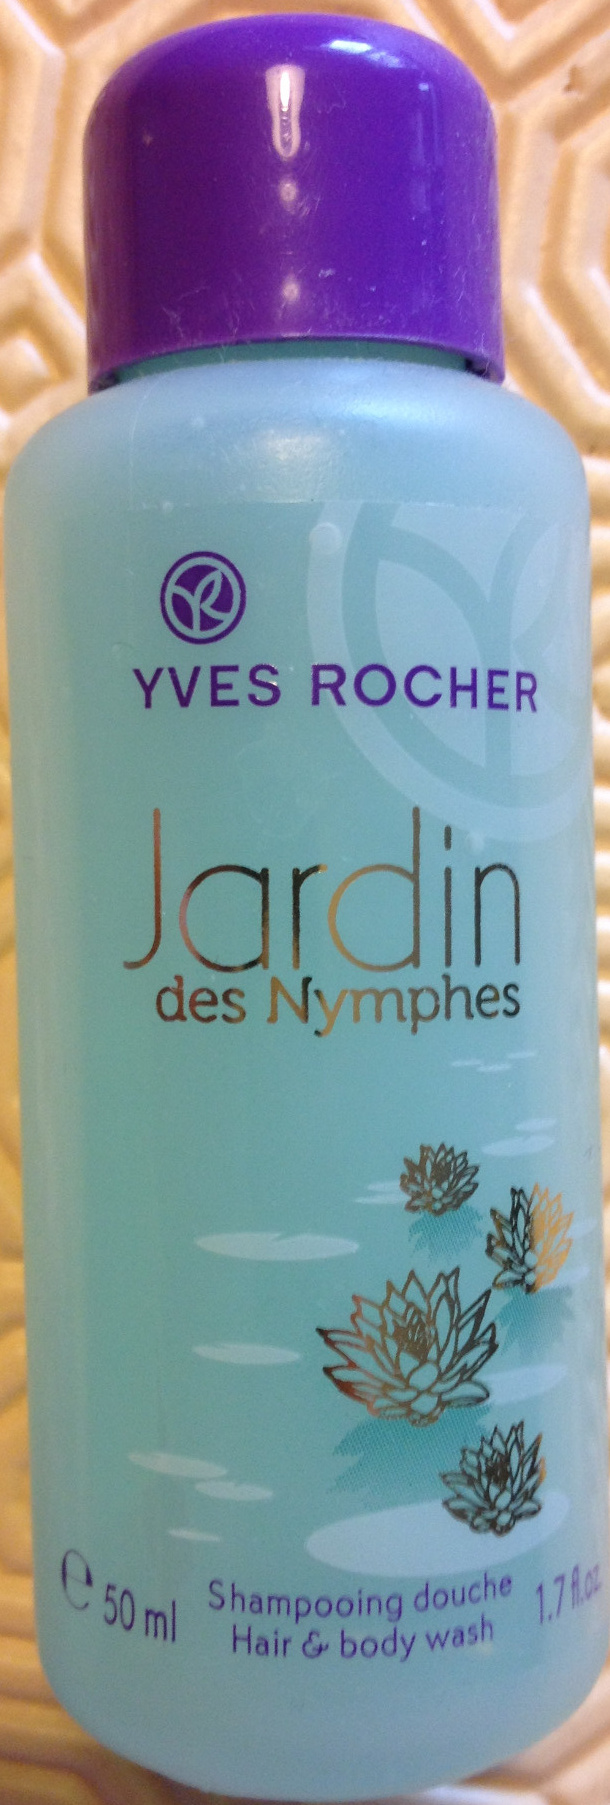 Jardin des Nymphes Shampooing douche - Product